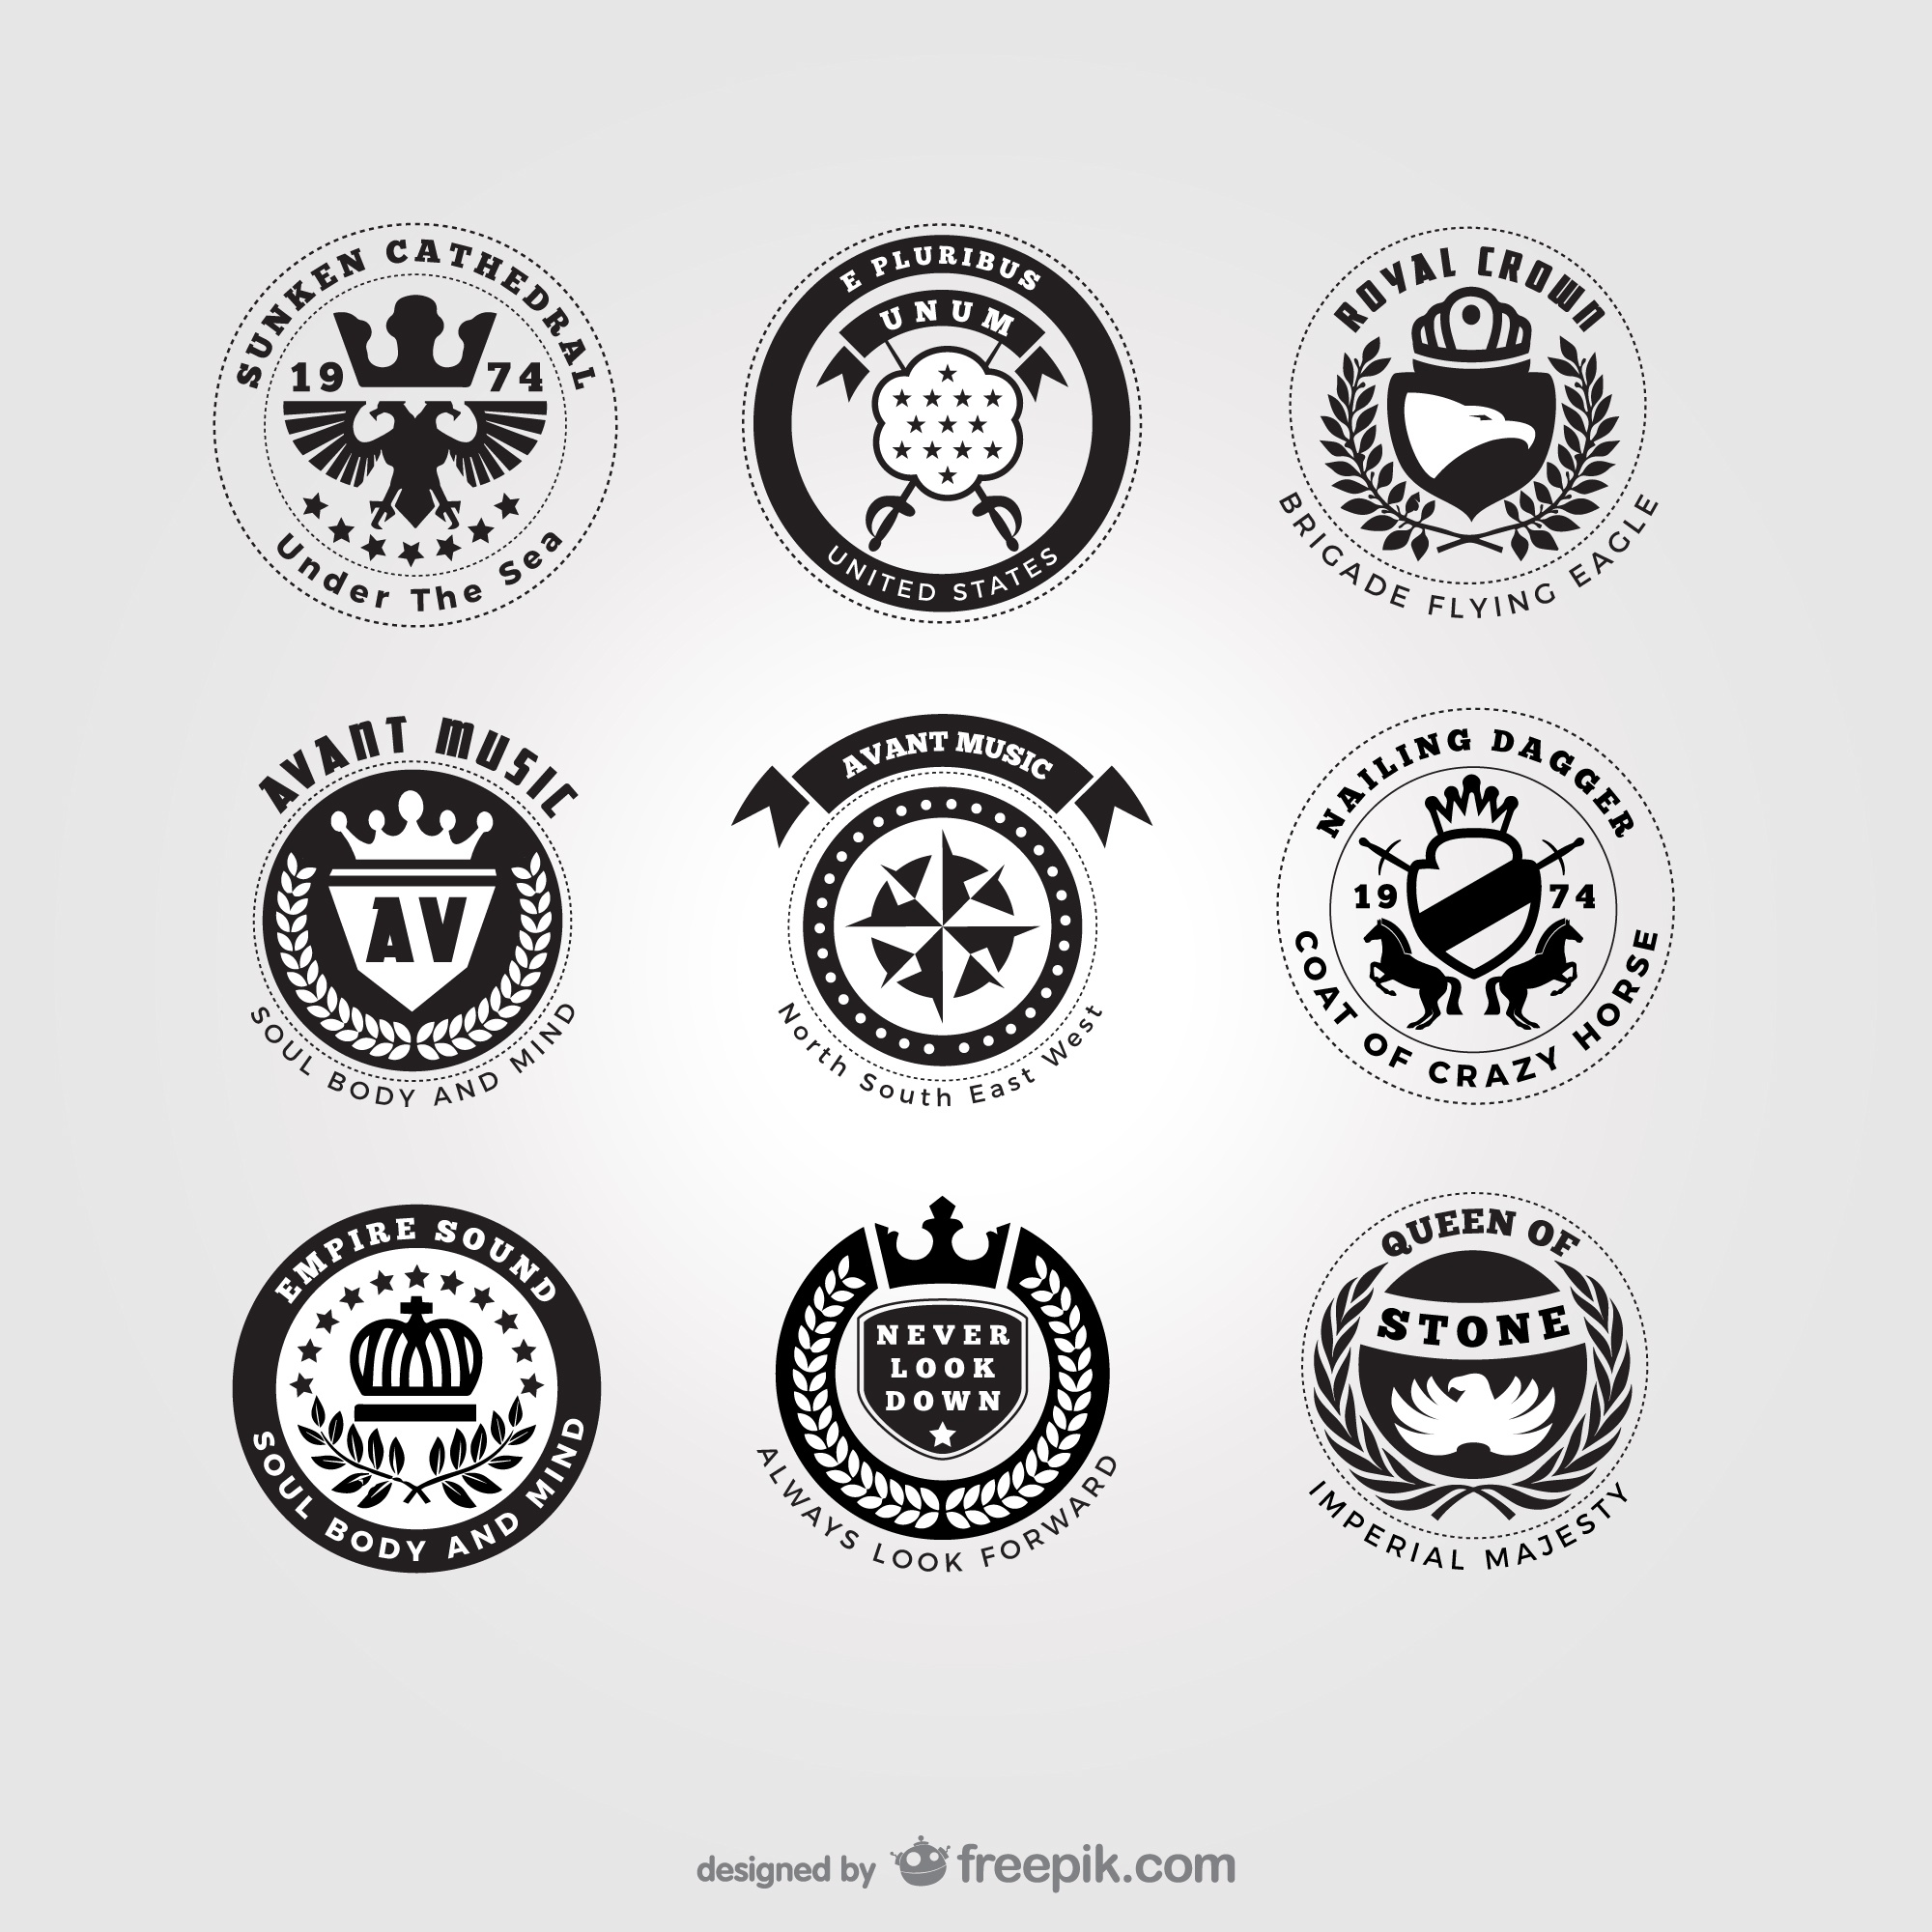 American style logos pack